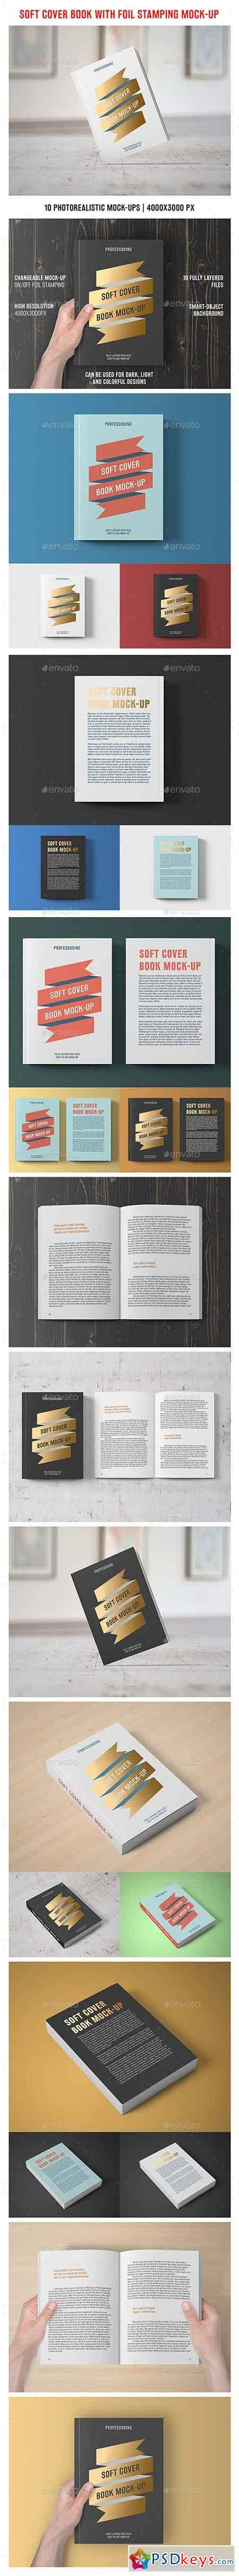 Soft Cover Book With Foil Stamping Mock-Up 16878031